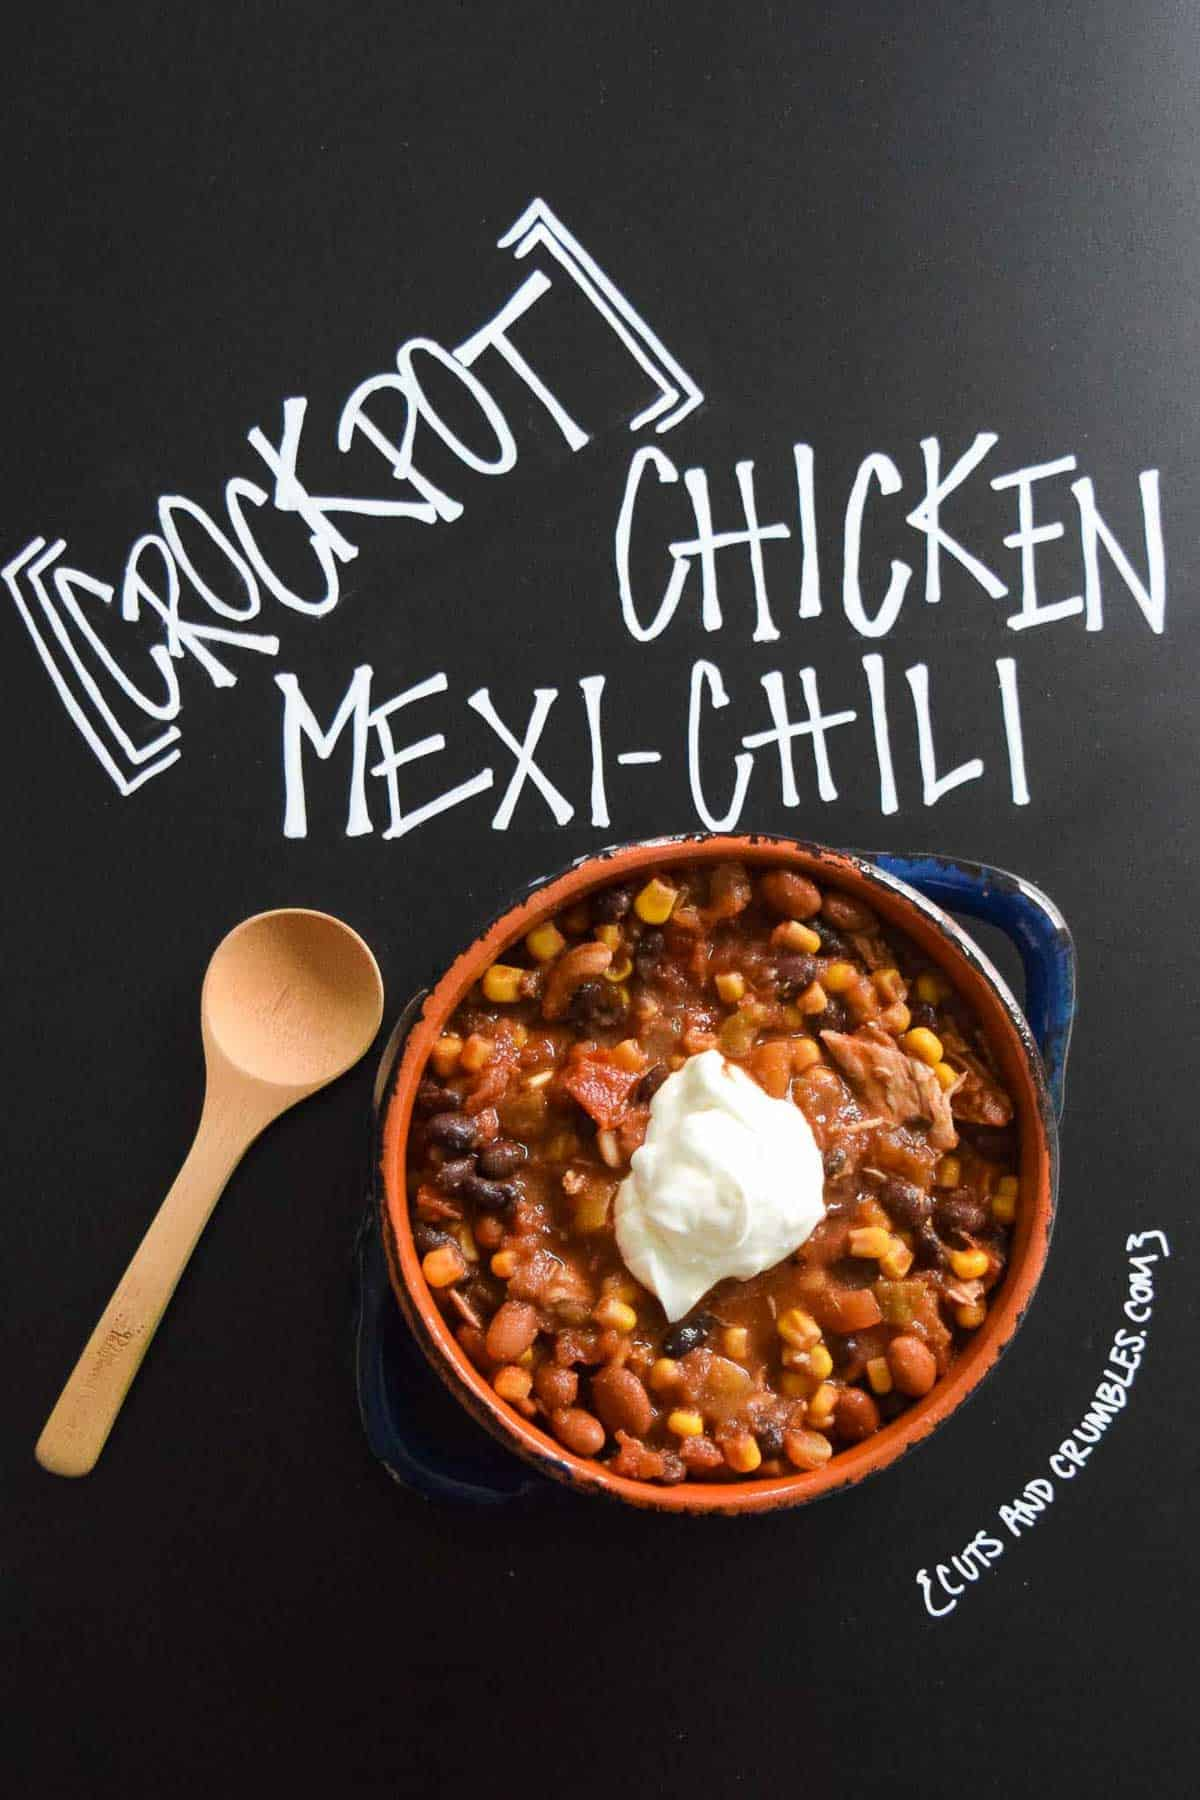 Crockpot Chicken Mexi-Chili with title written on chalkboard